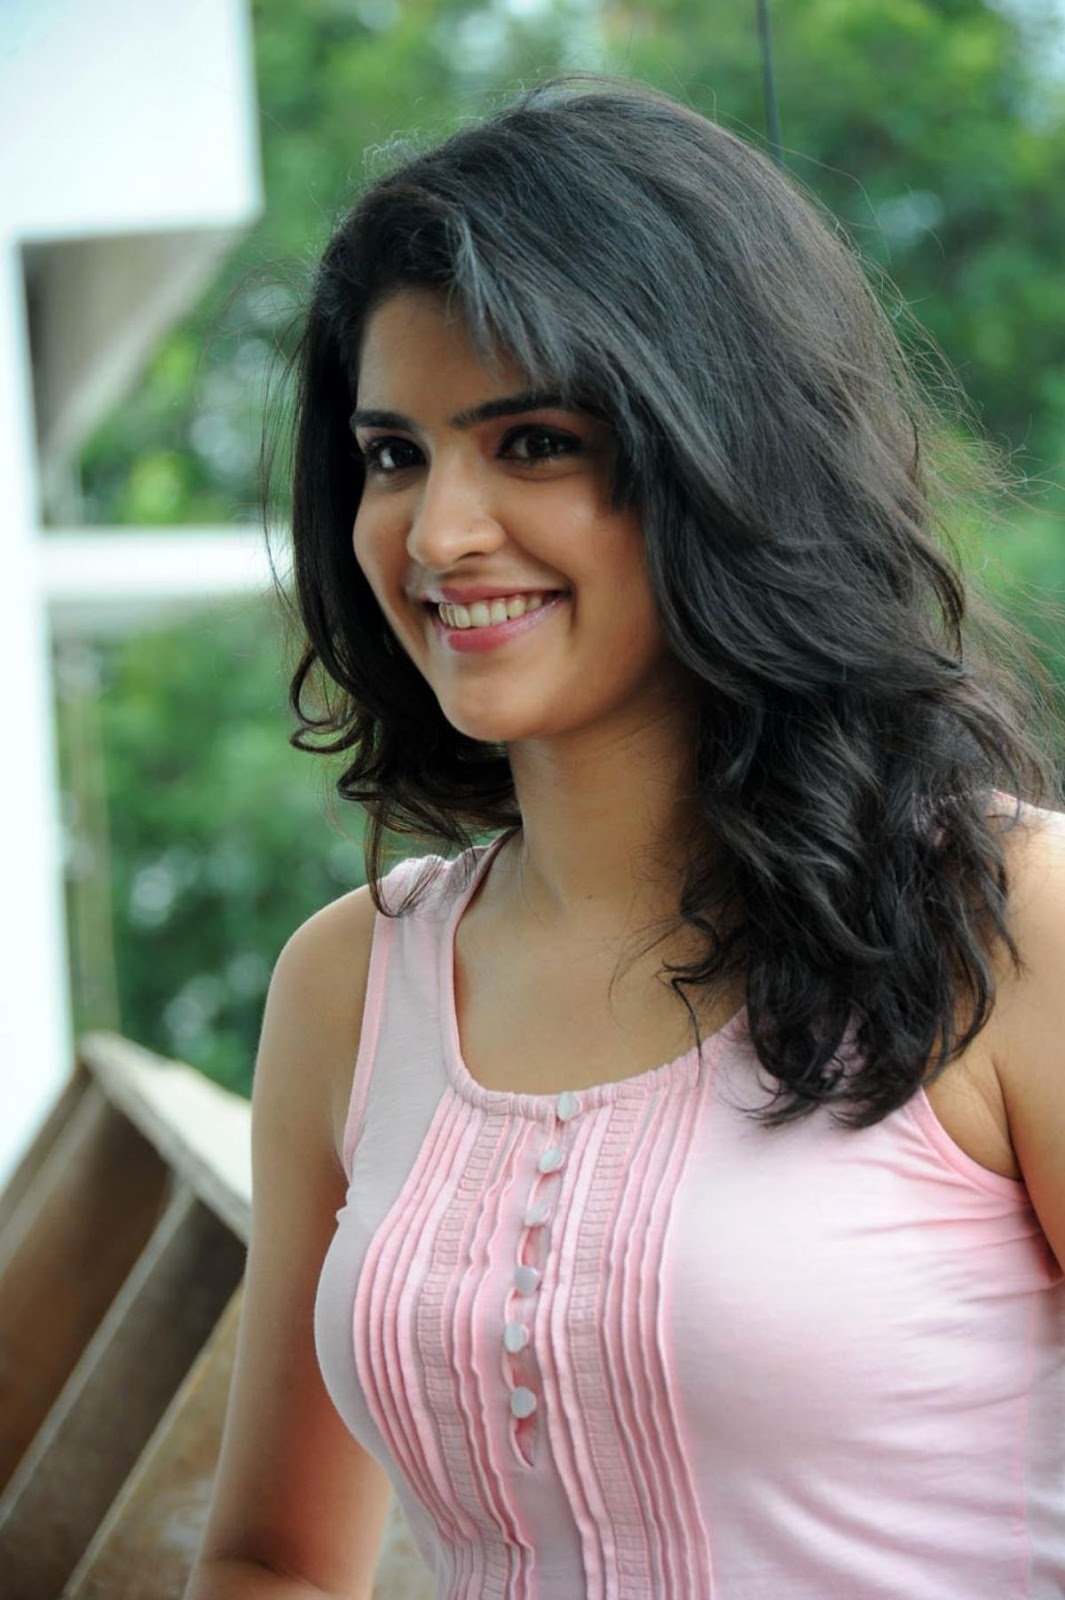 Cute deeksha in jeans & pink tops